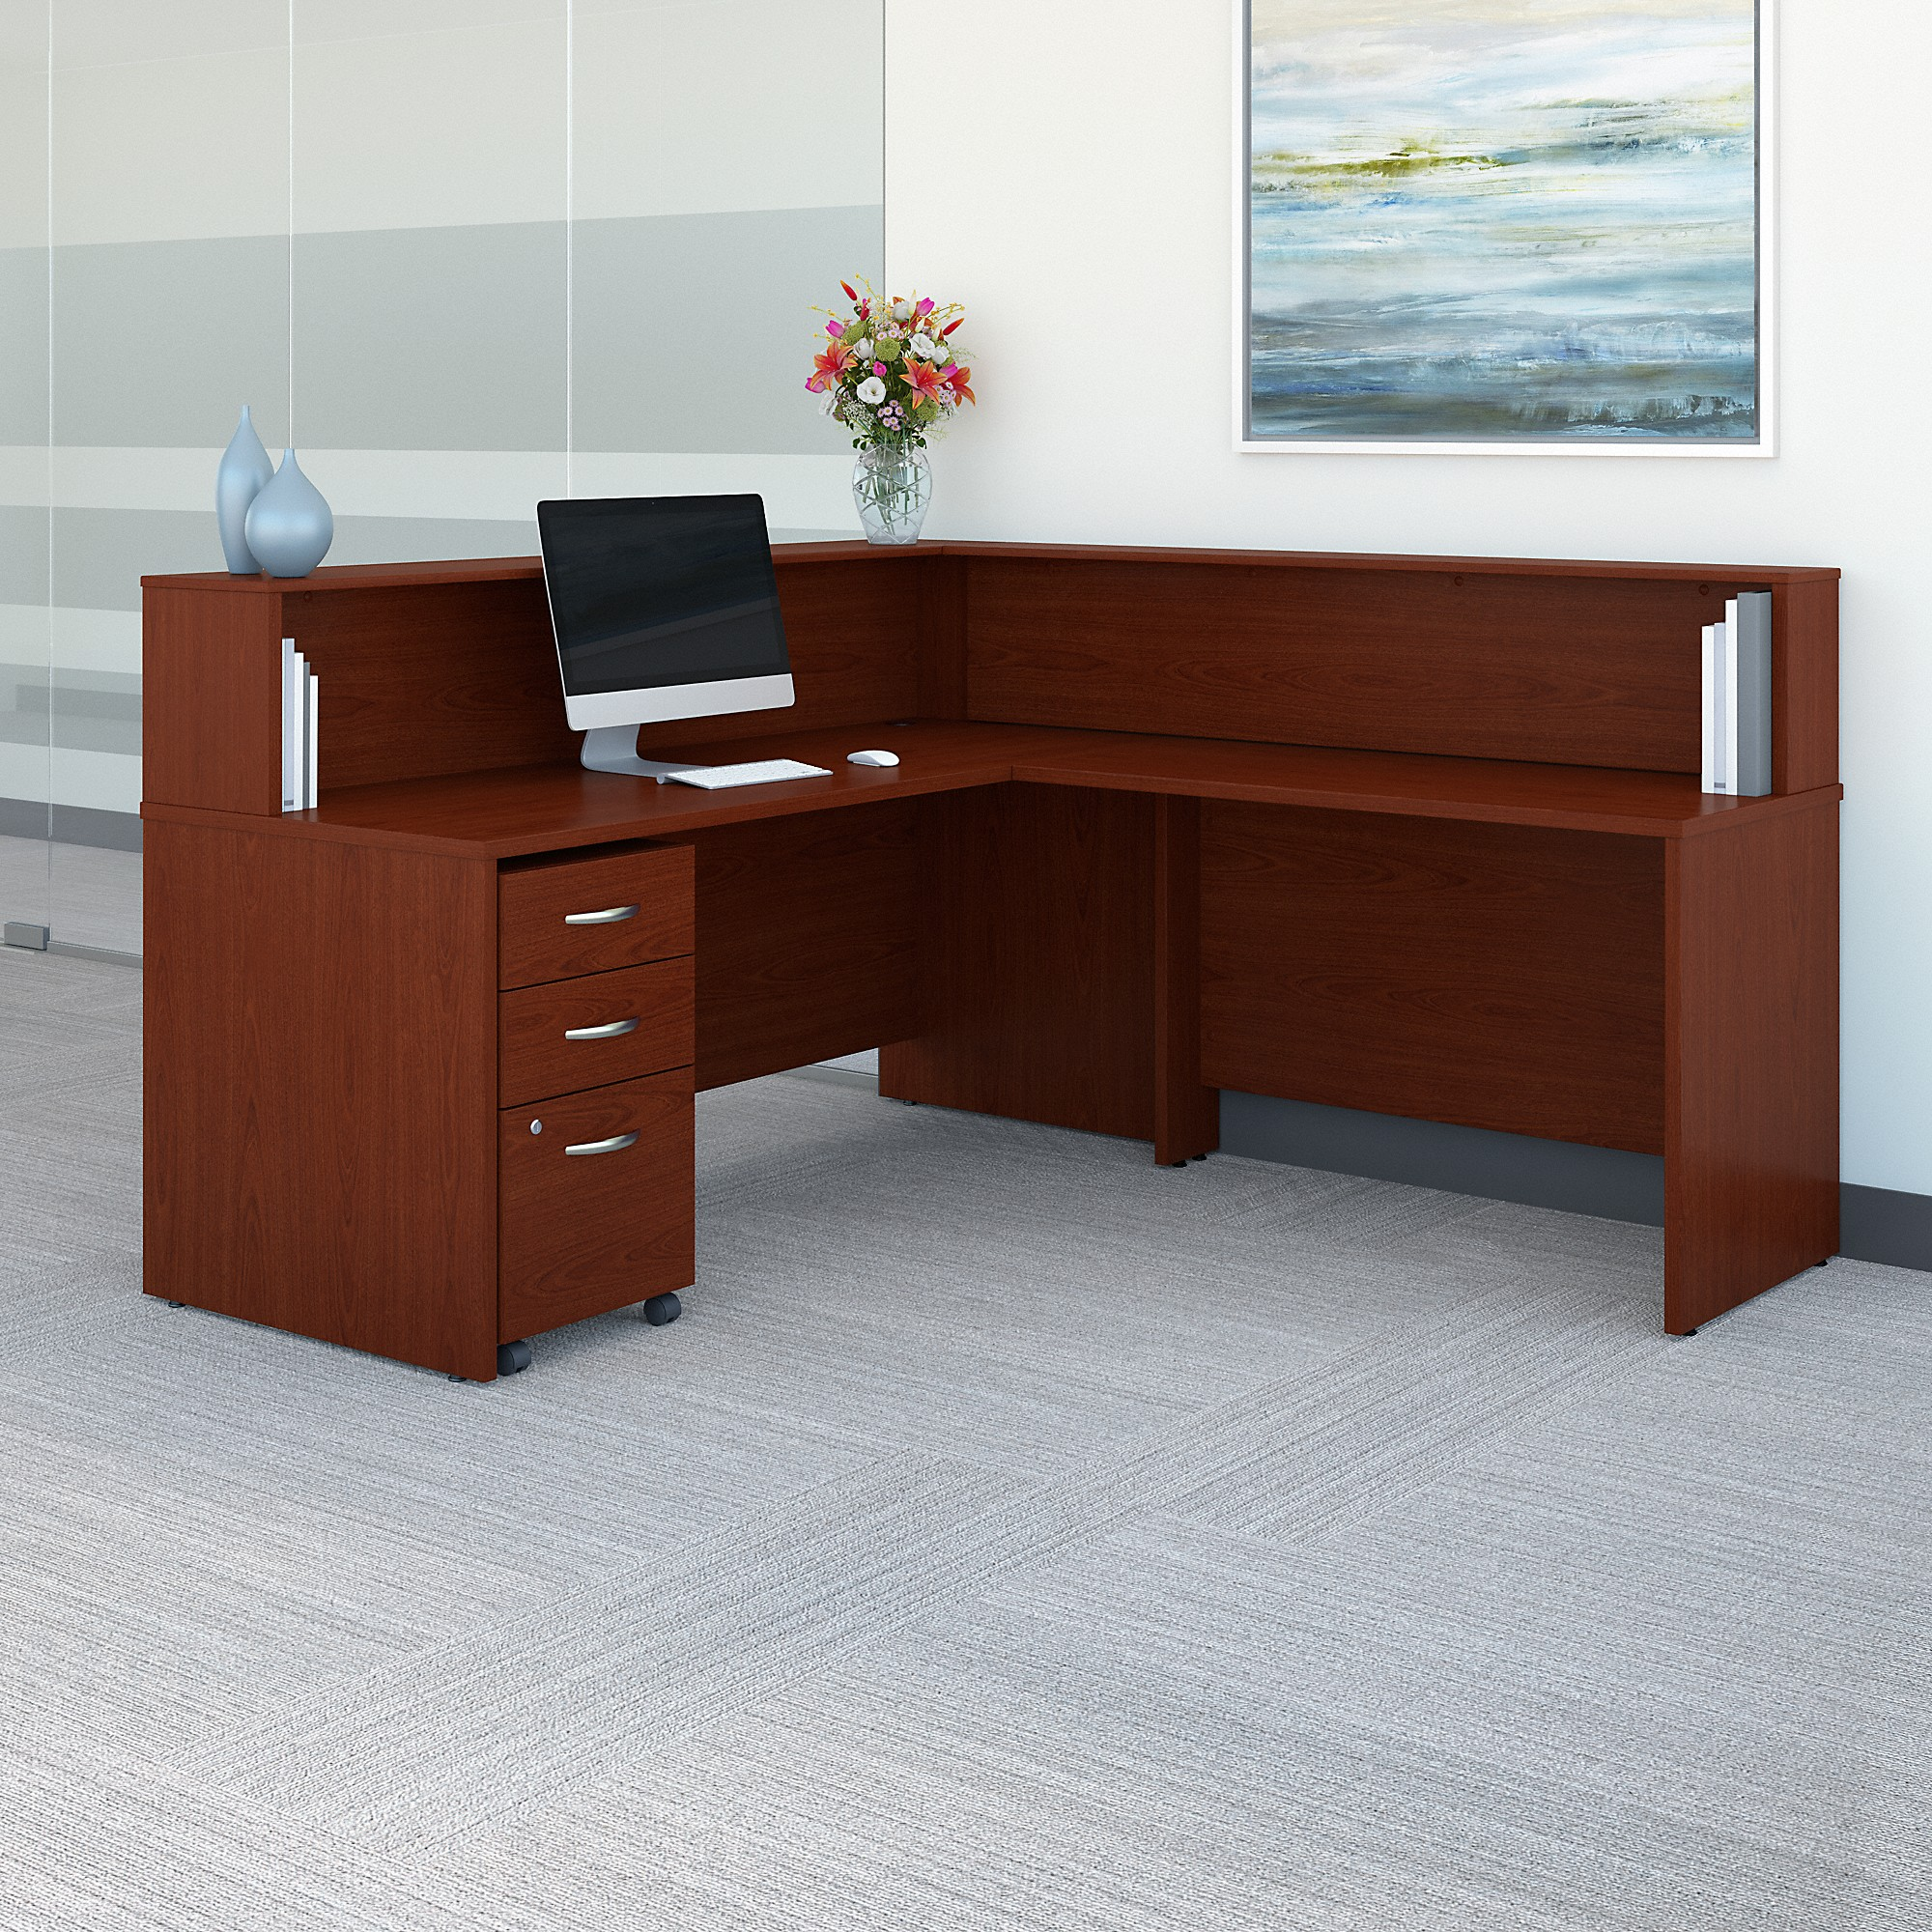 Bush Business Furniture Series C L Shaped Reception Desk with Mobile File Cabinet